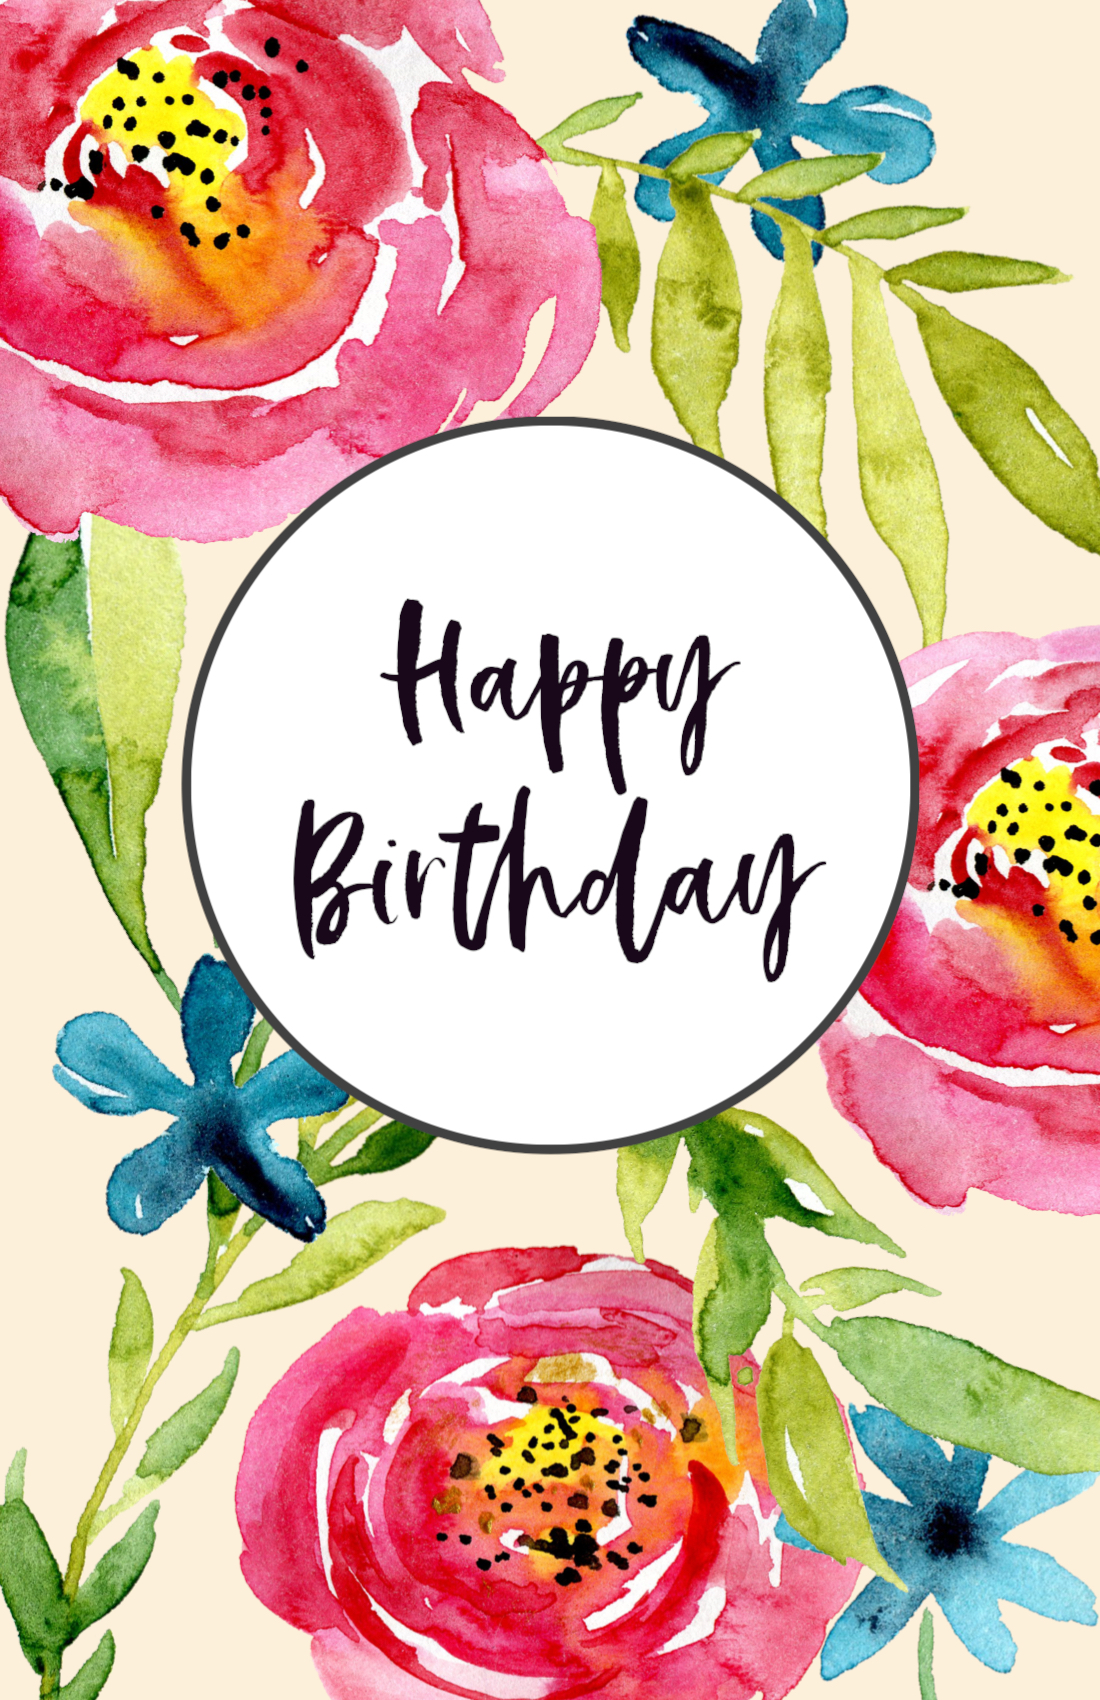 Marvelous Free Printable Birthday Cards Paper Trail Design Funny Birthday Cards Online Overcheapnameinfo